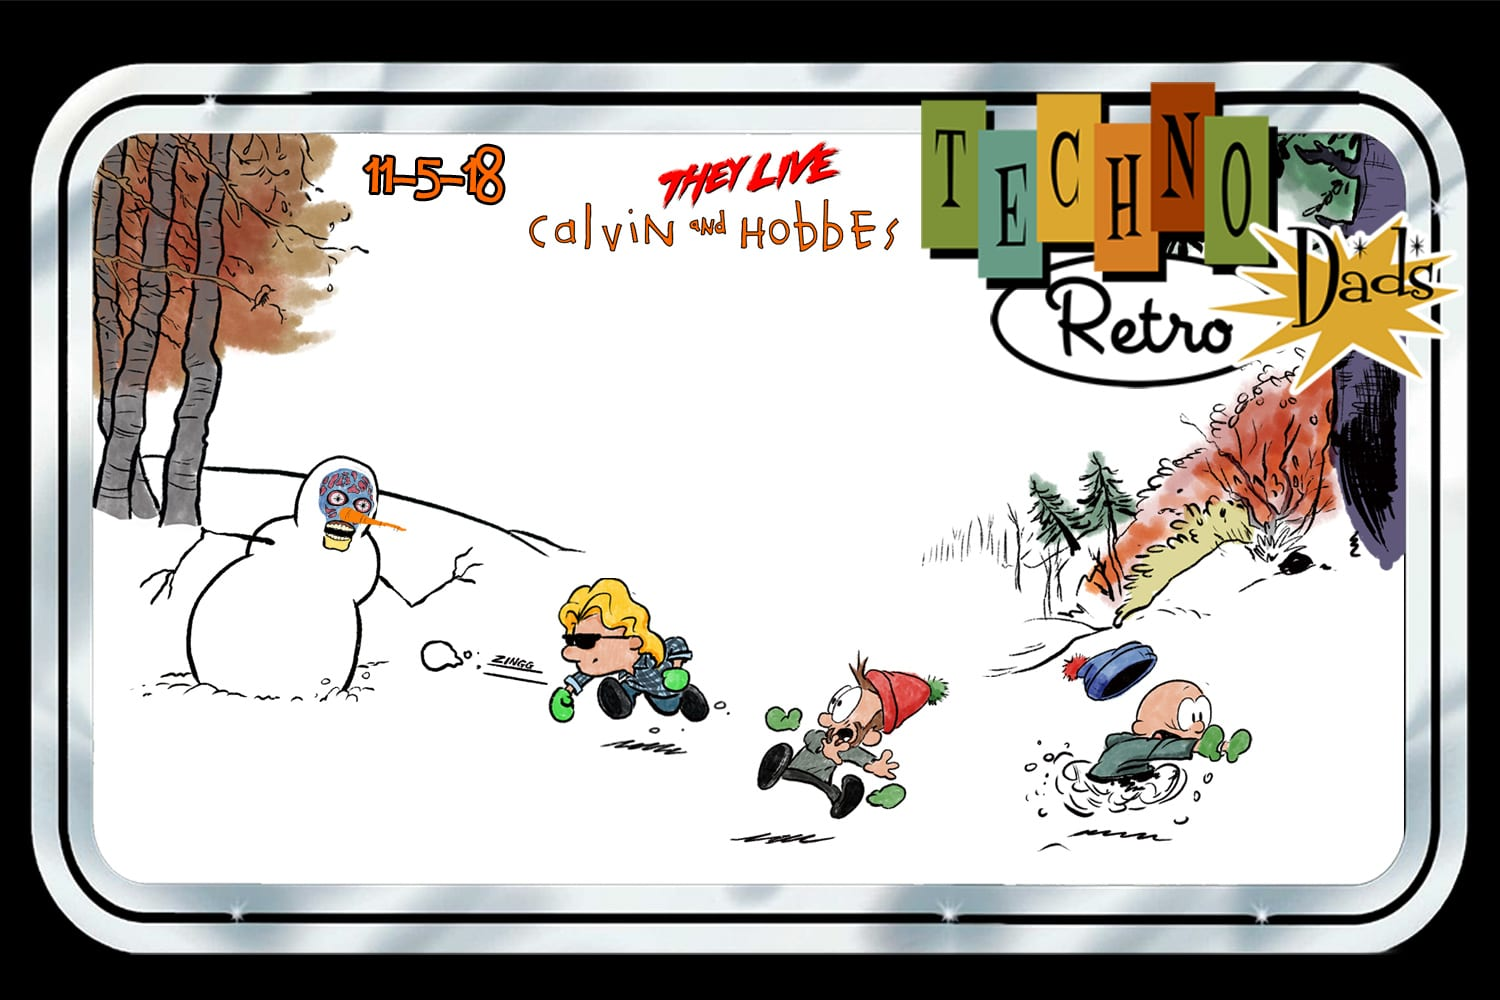 Calvin and Hobbes, They Live, Snowmen